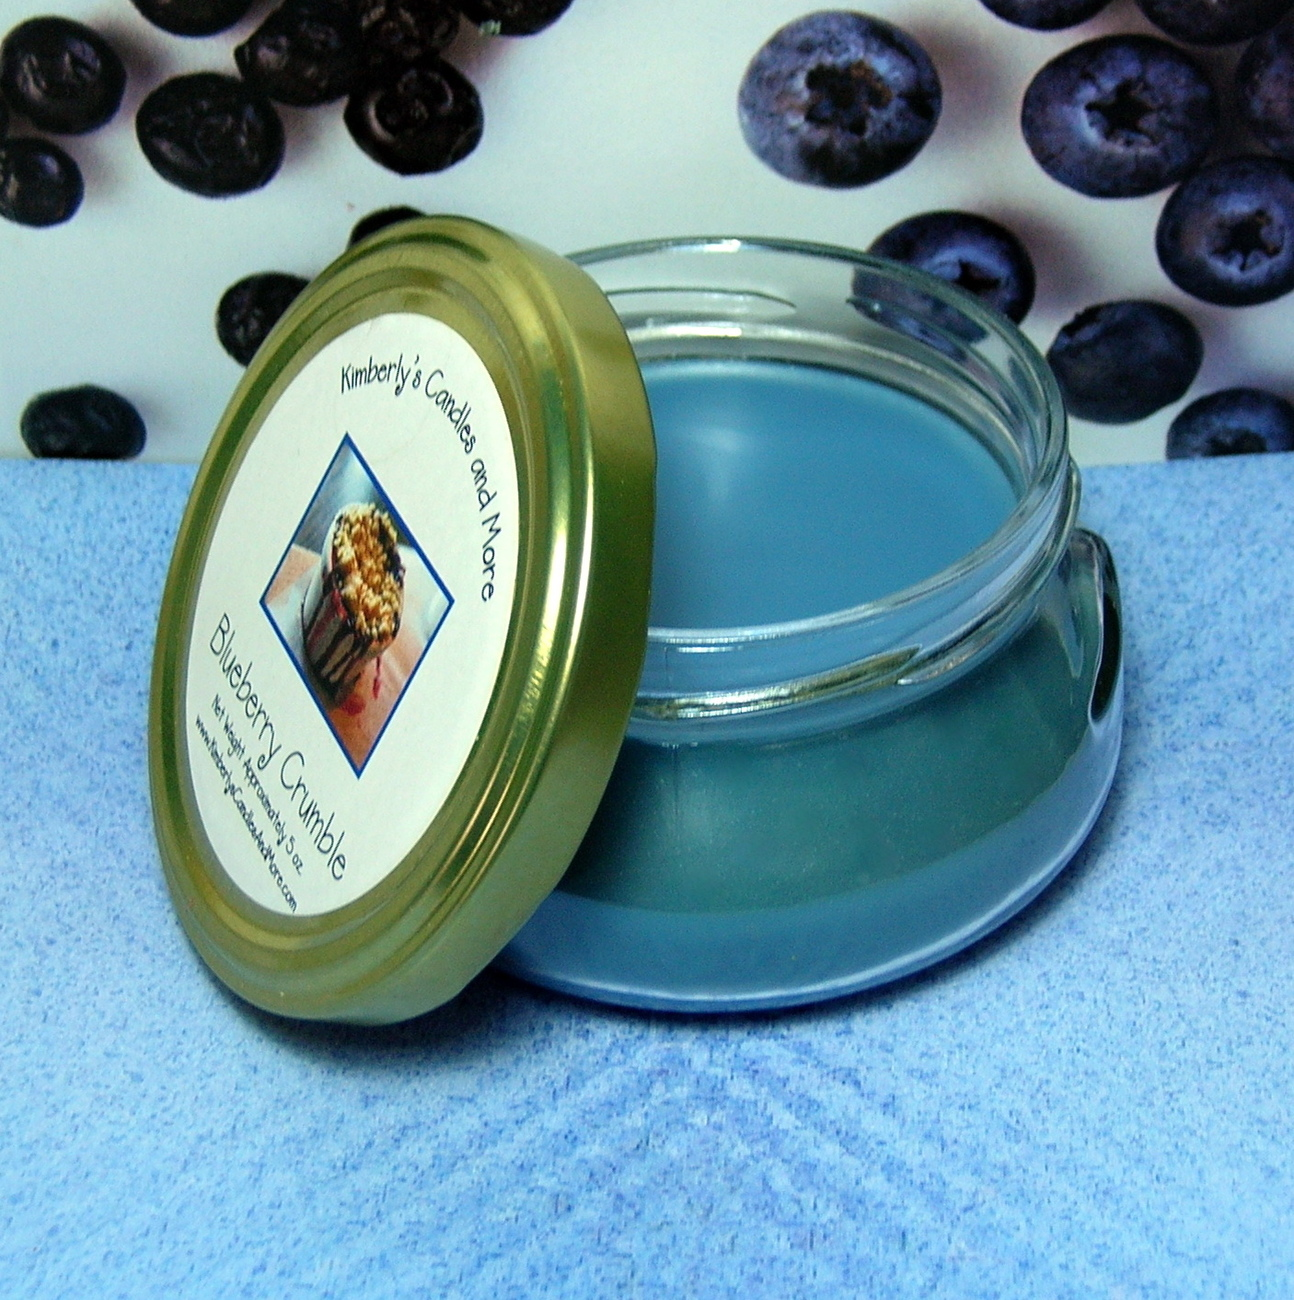 Blueberry Crumble Wickless Candle